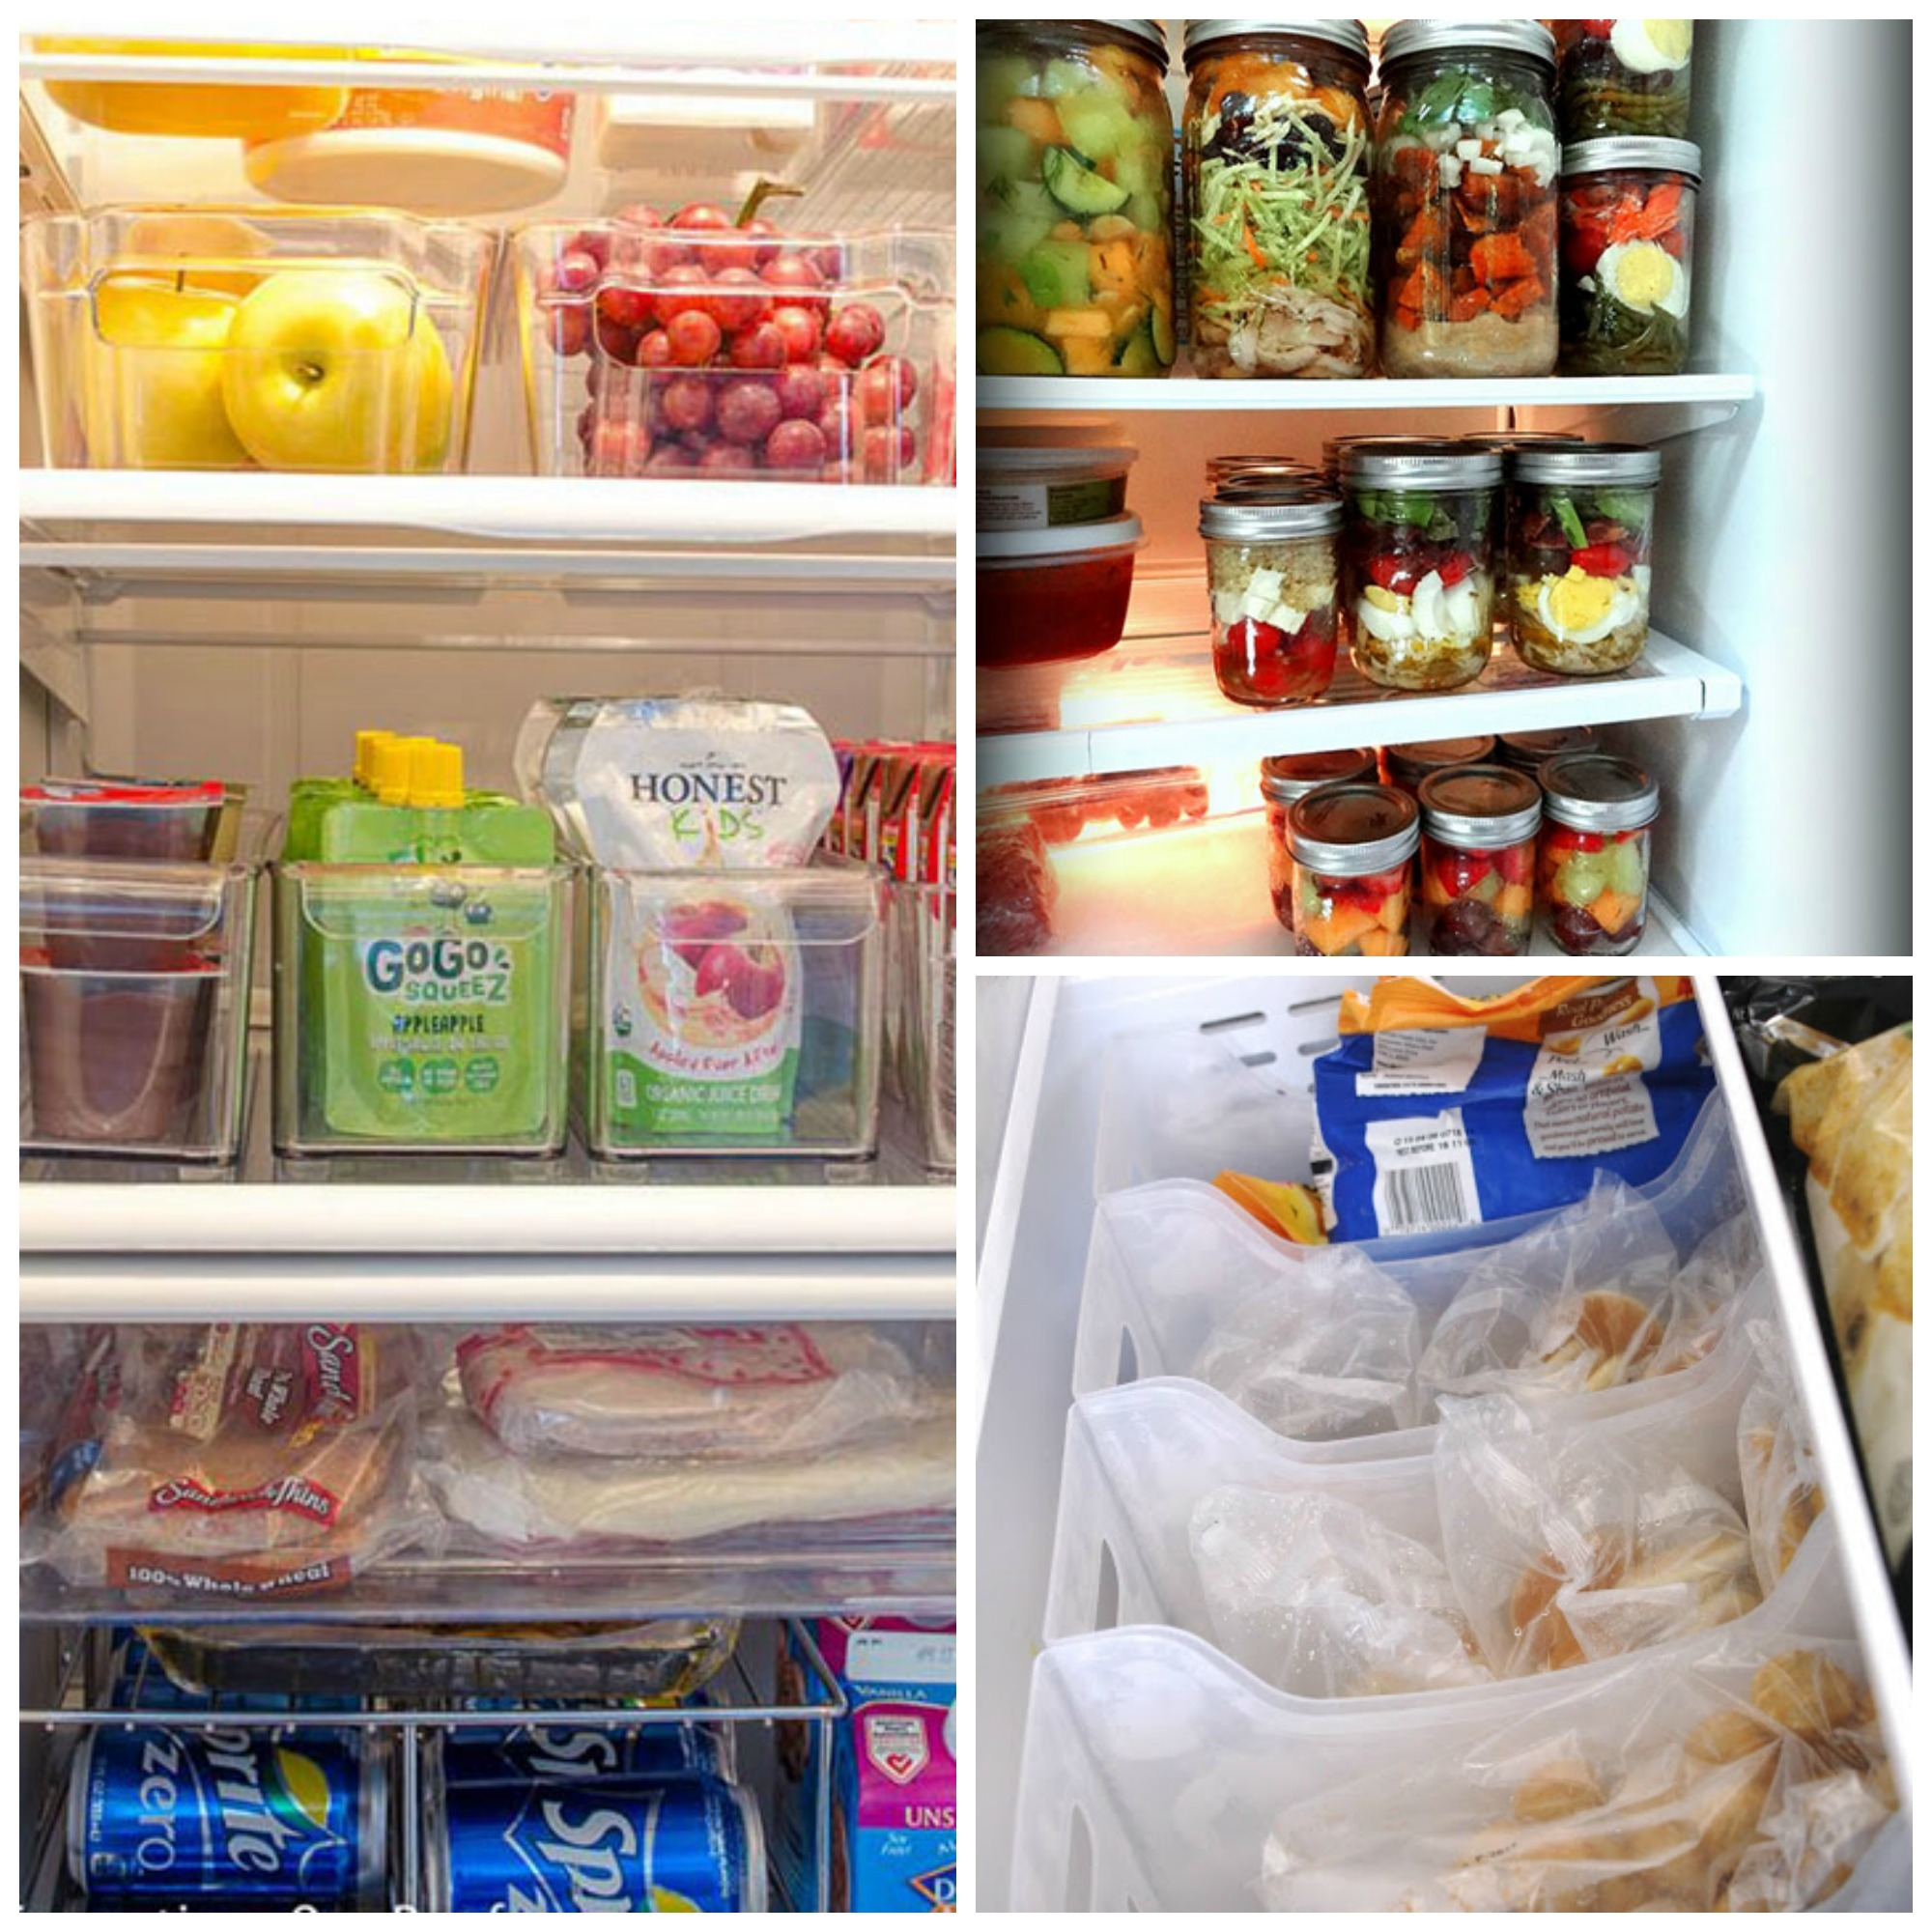 14 Genius Hacks For A Perfectly Organized Refrigerator: 14 Brilliant Hacks To Keep Your Fridge Clean And Organized